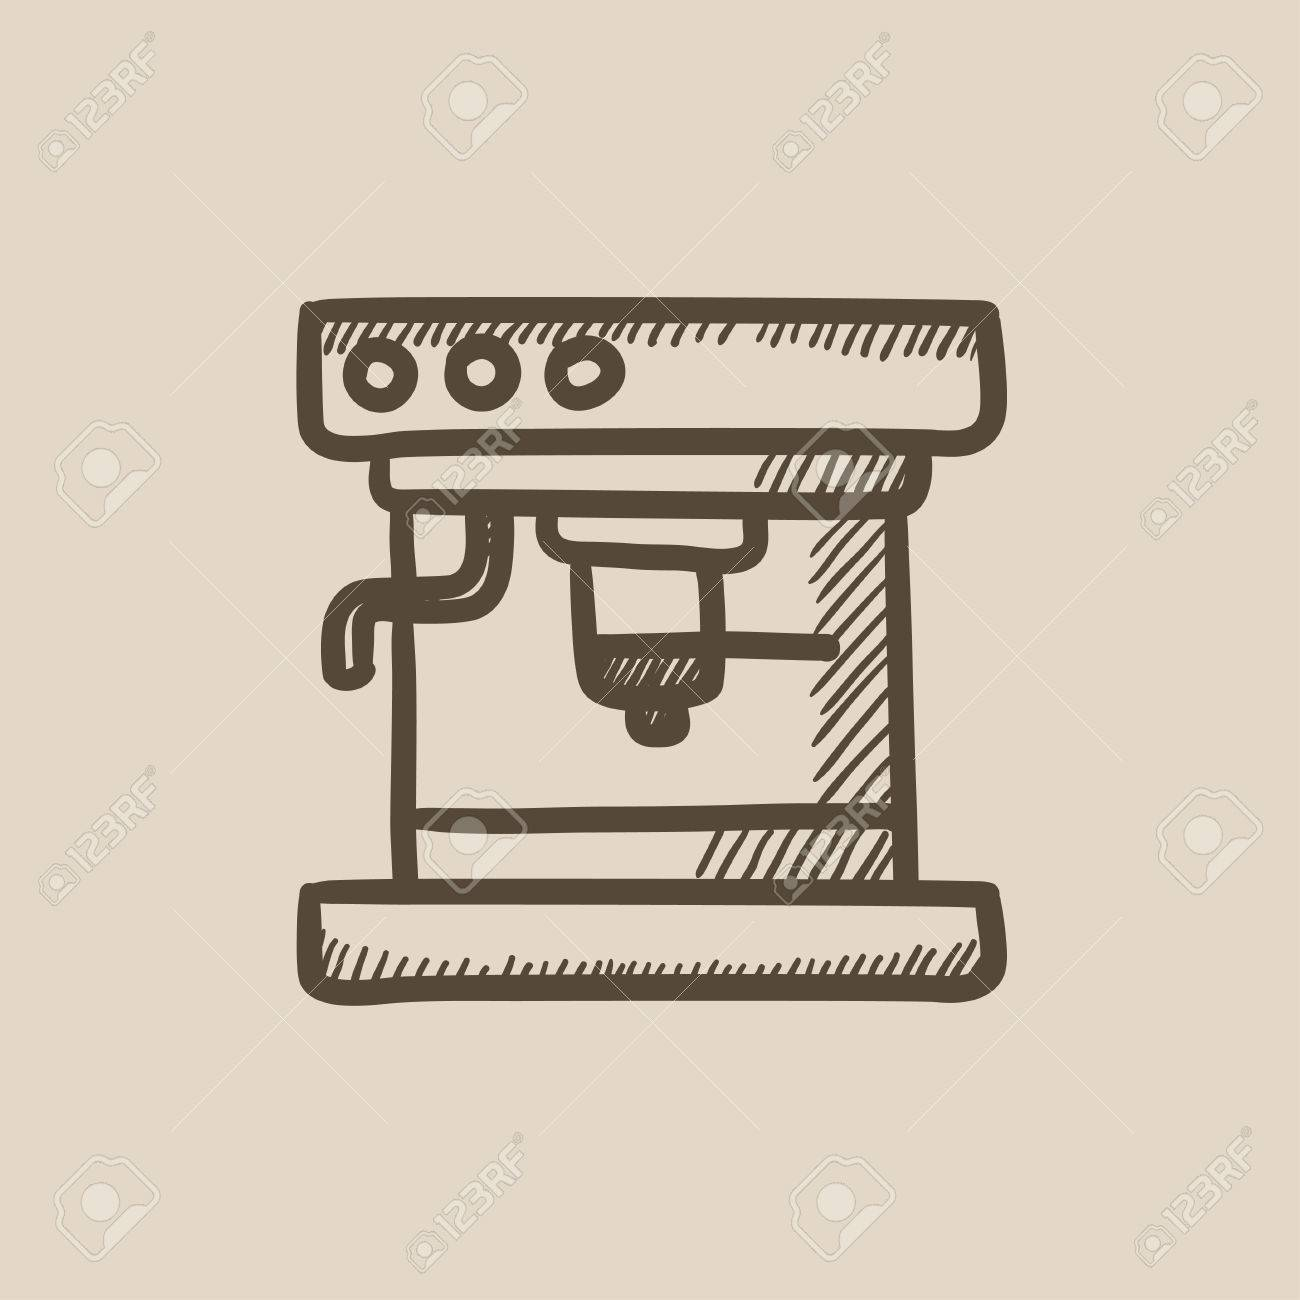 Coffee Maker Drawing at GetDrawings.com | Free for personal use ...